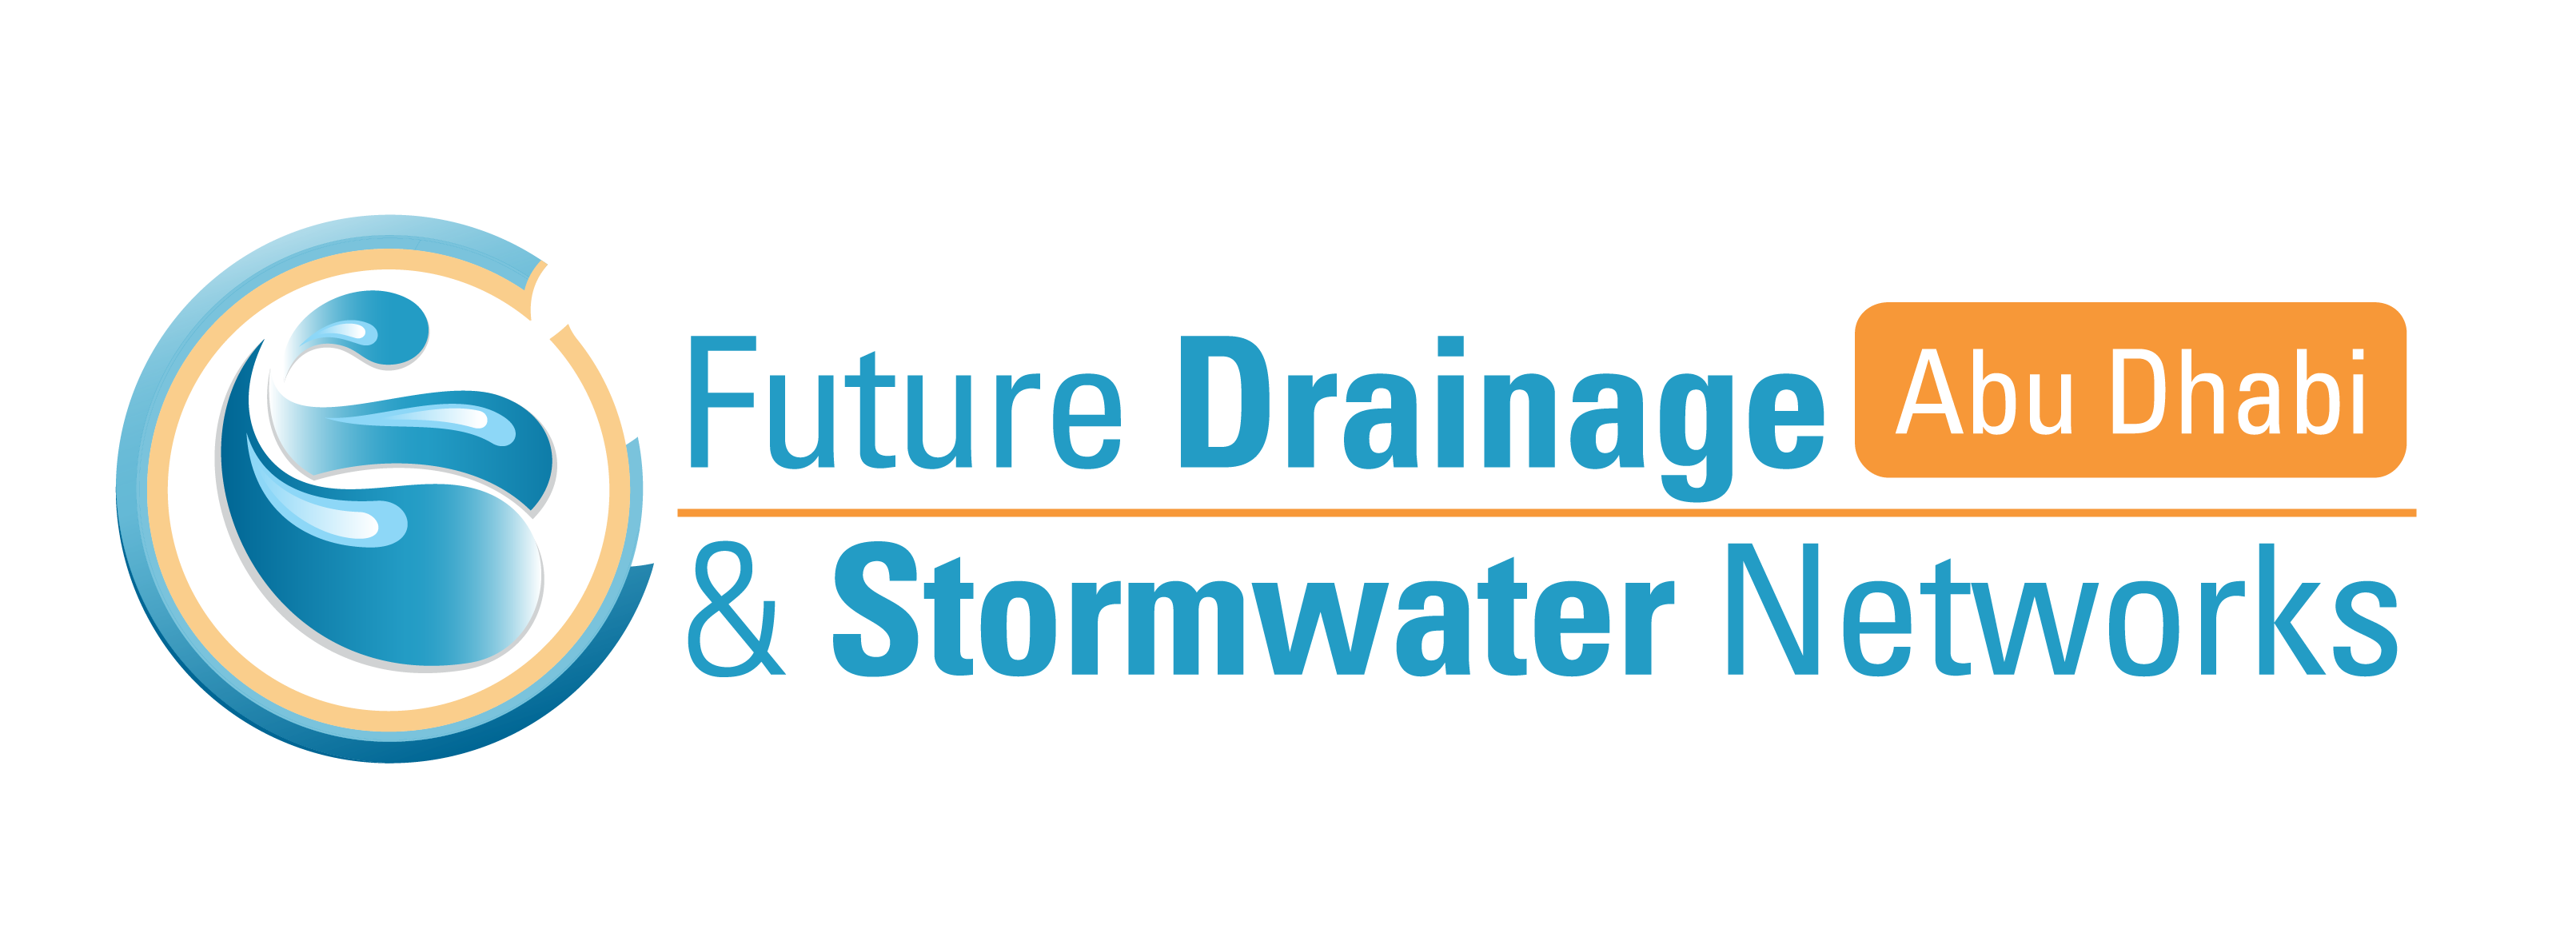 Future Drainage & Stormwater Networks Abu Dhabi   Request